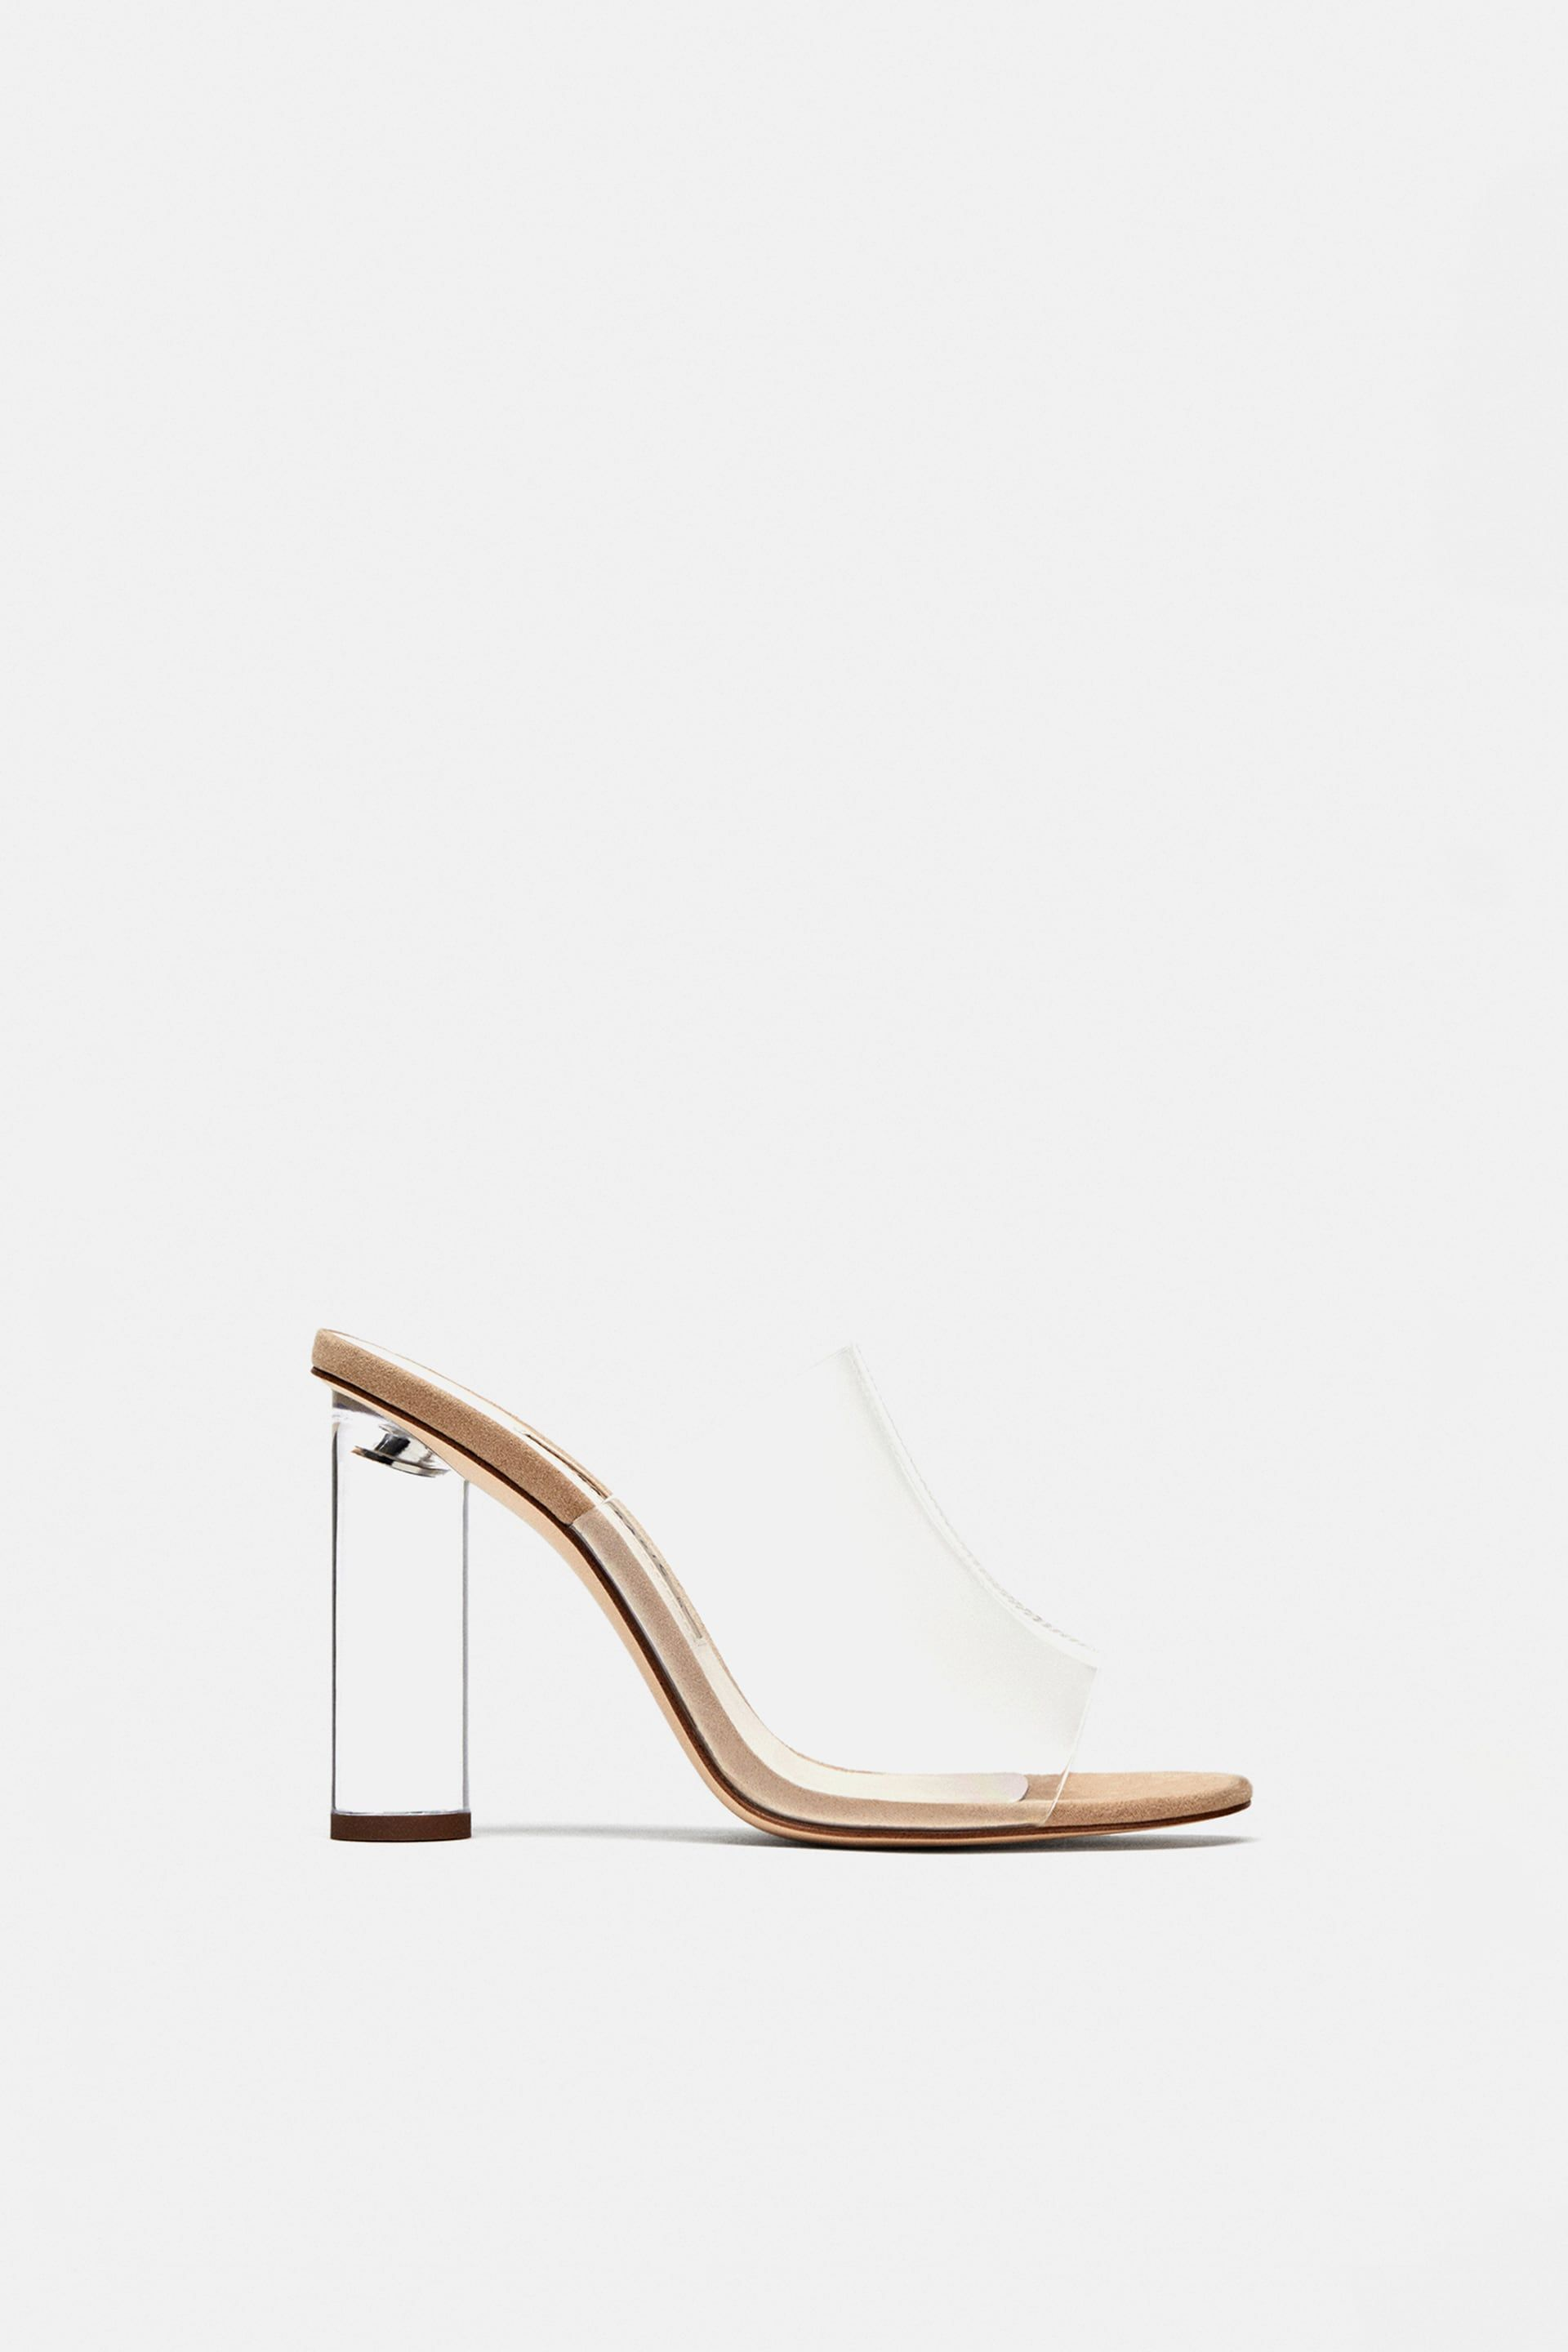 994d9d16d84 Image 1 of VINYL MULES WITH METHACRYLATE HEEL from Zara